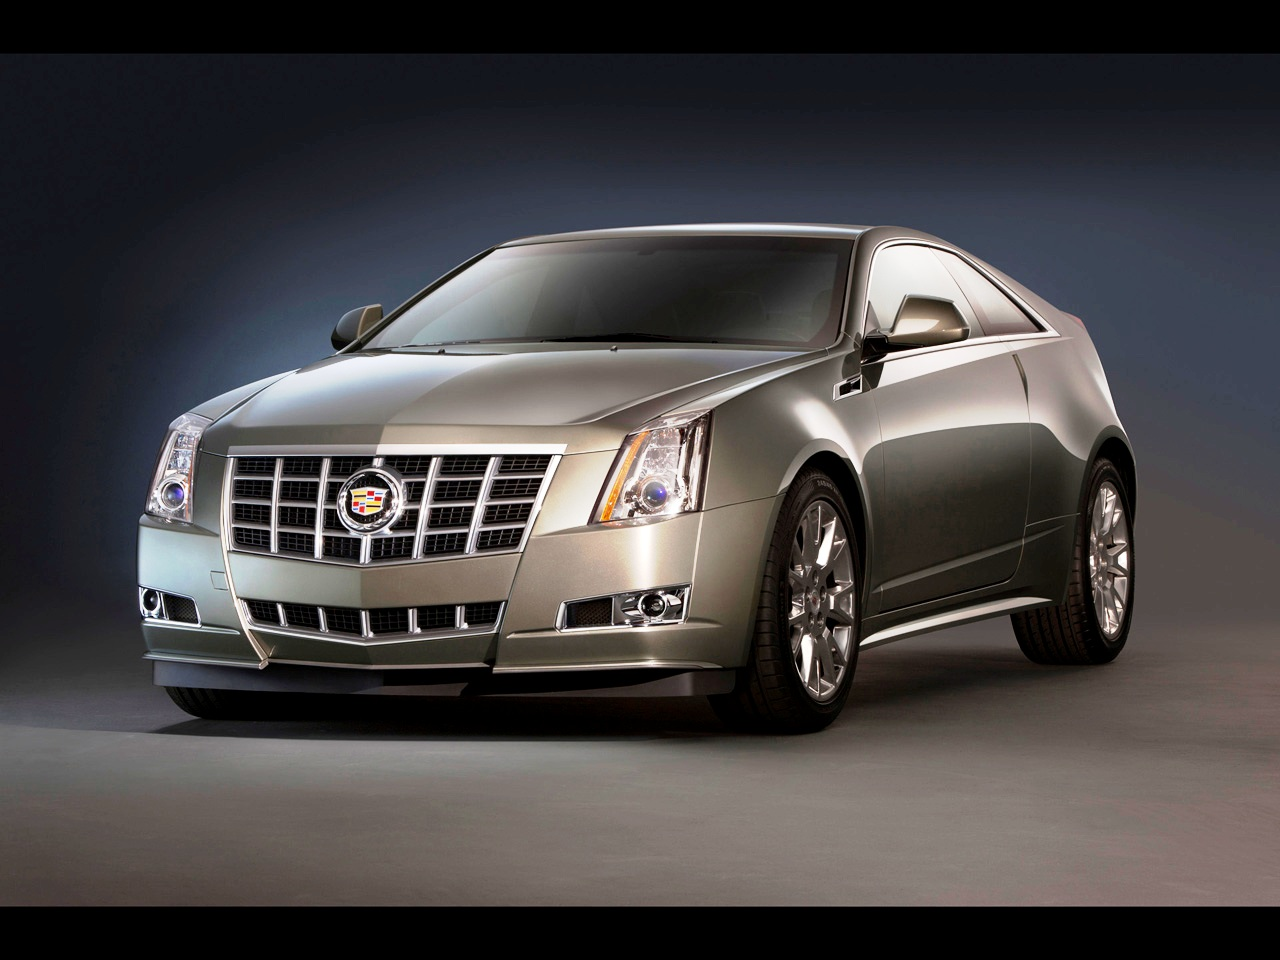 2013 cadillac cts coupe bussines news hot car. Cars Review. Best American Auto & Cars Review